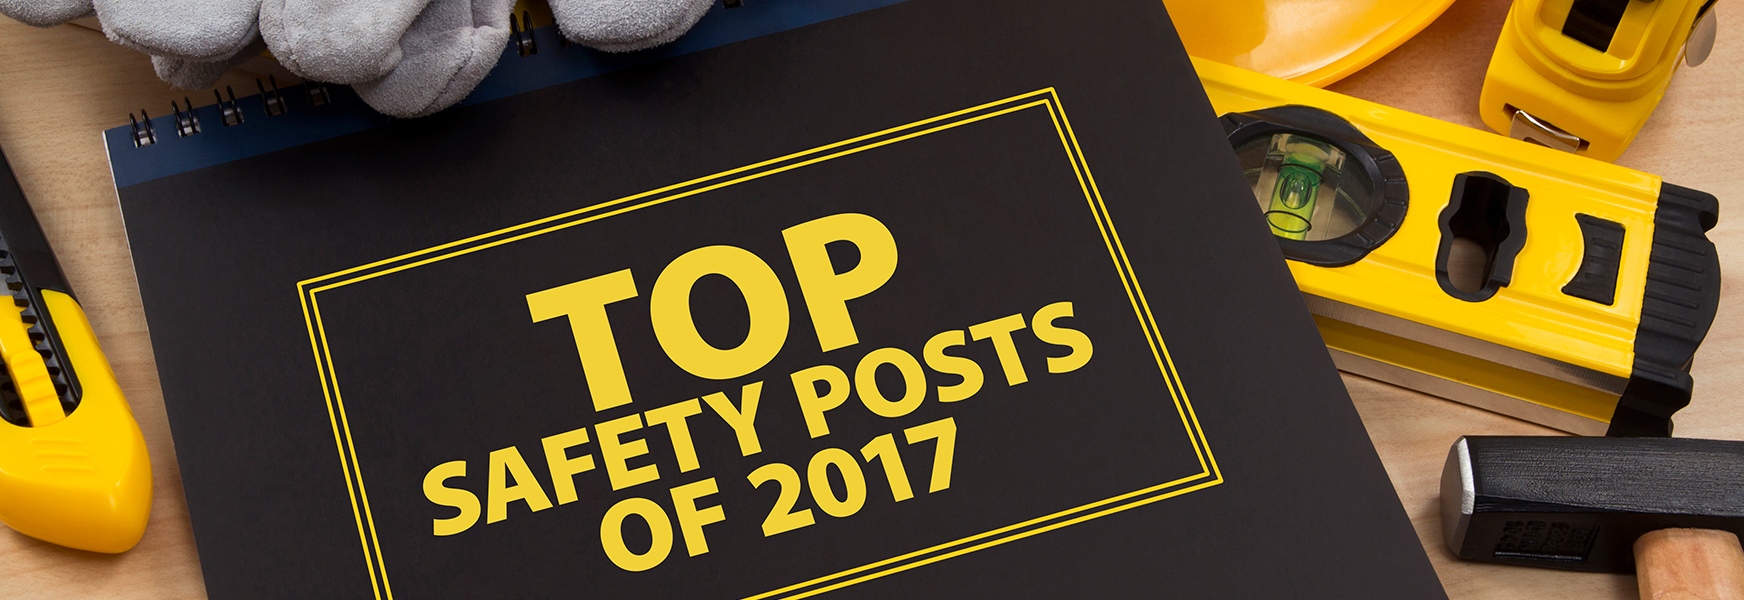 Top Safety Post of 2017